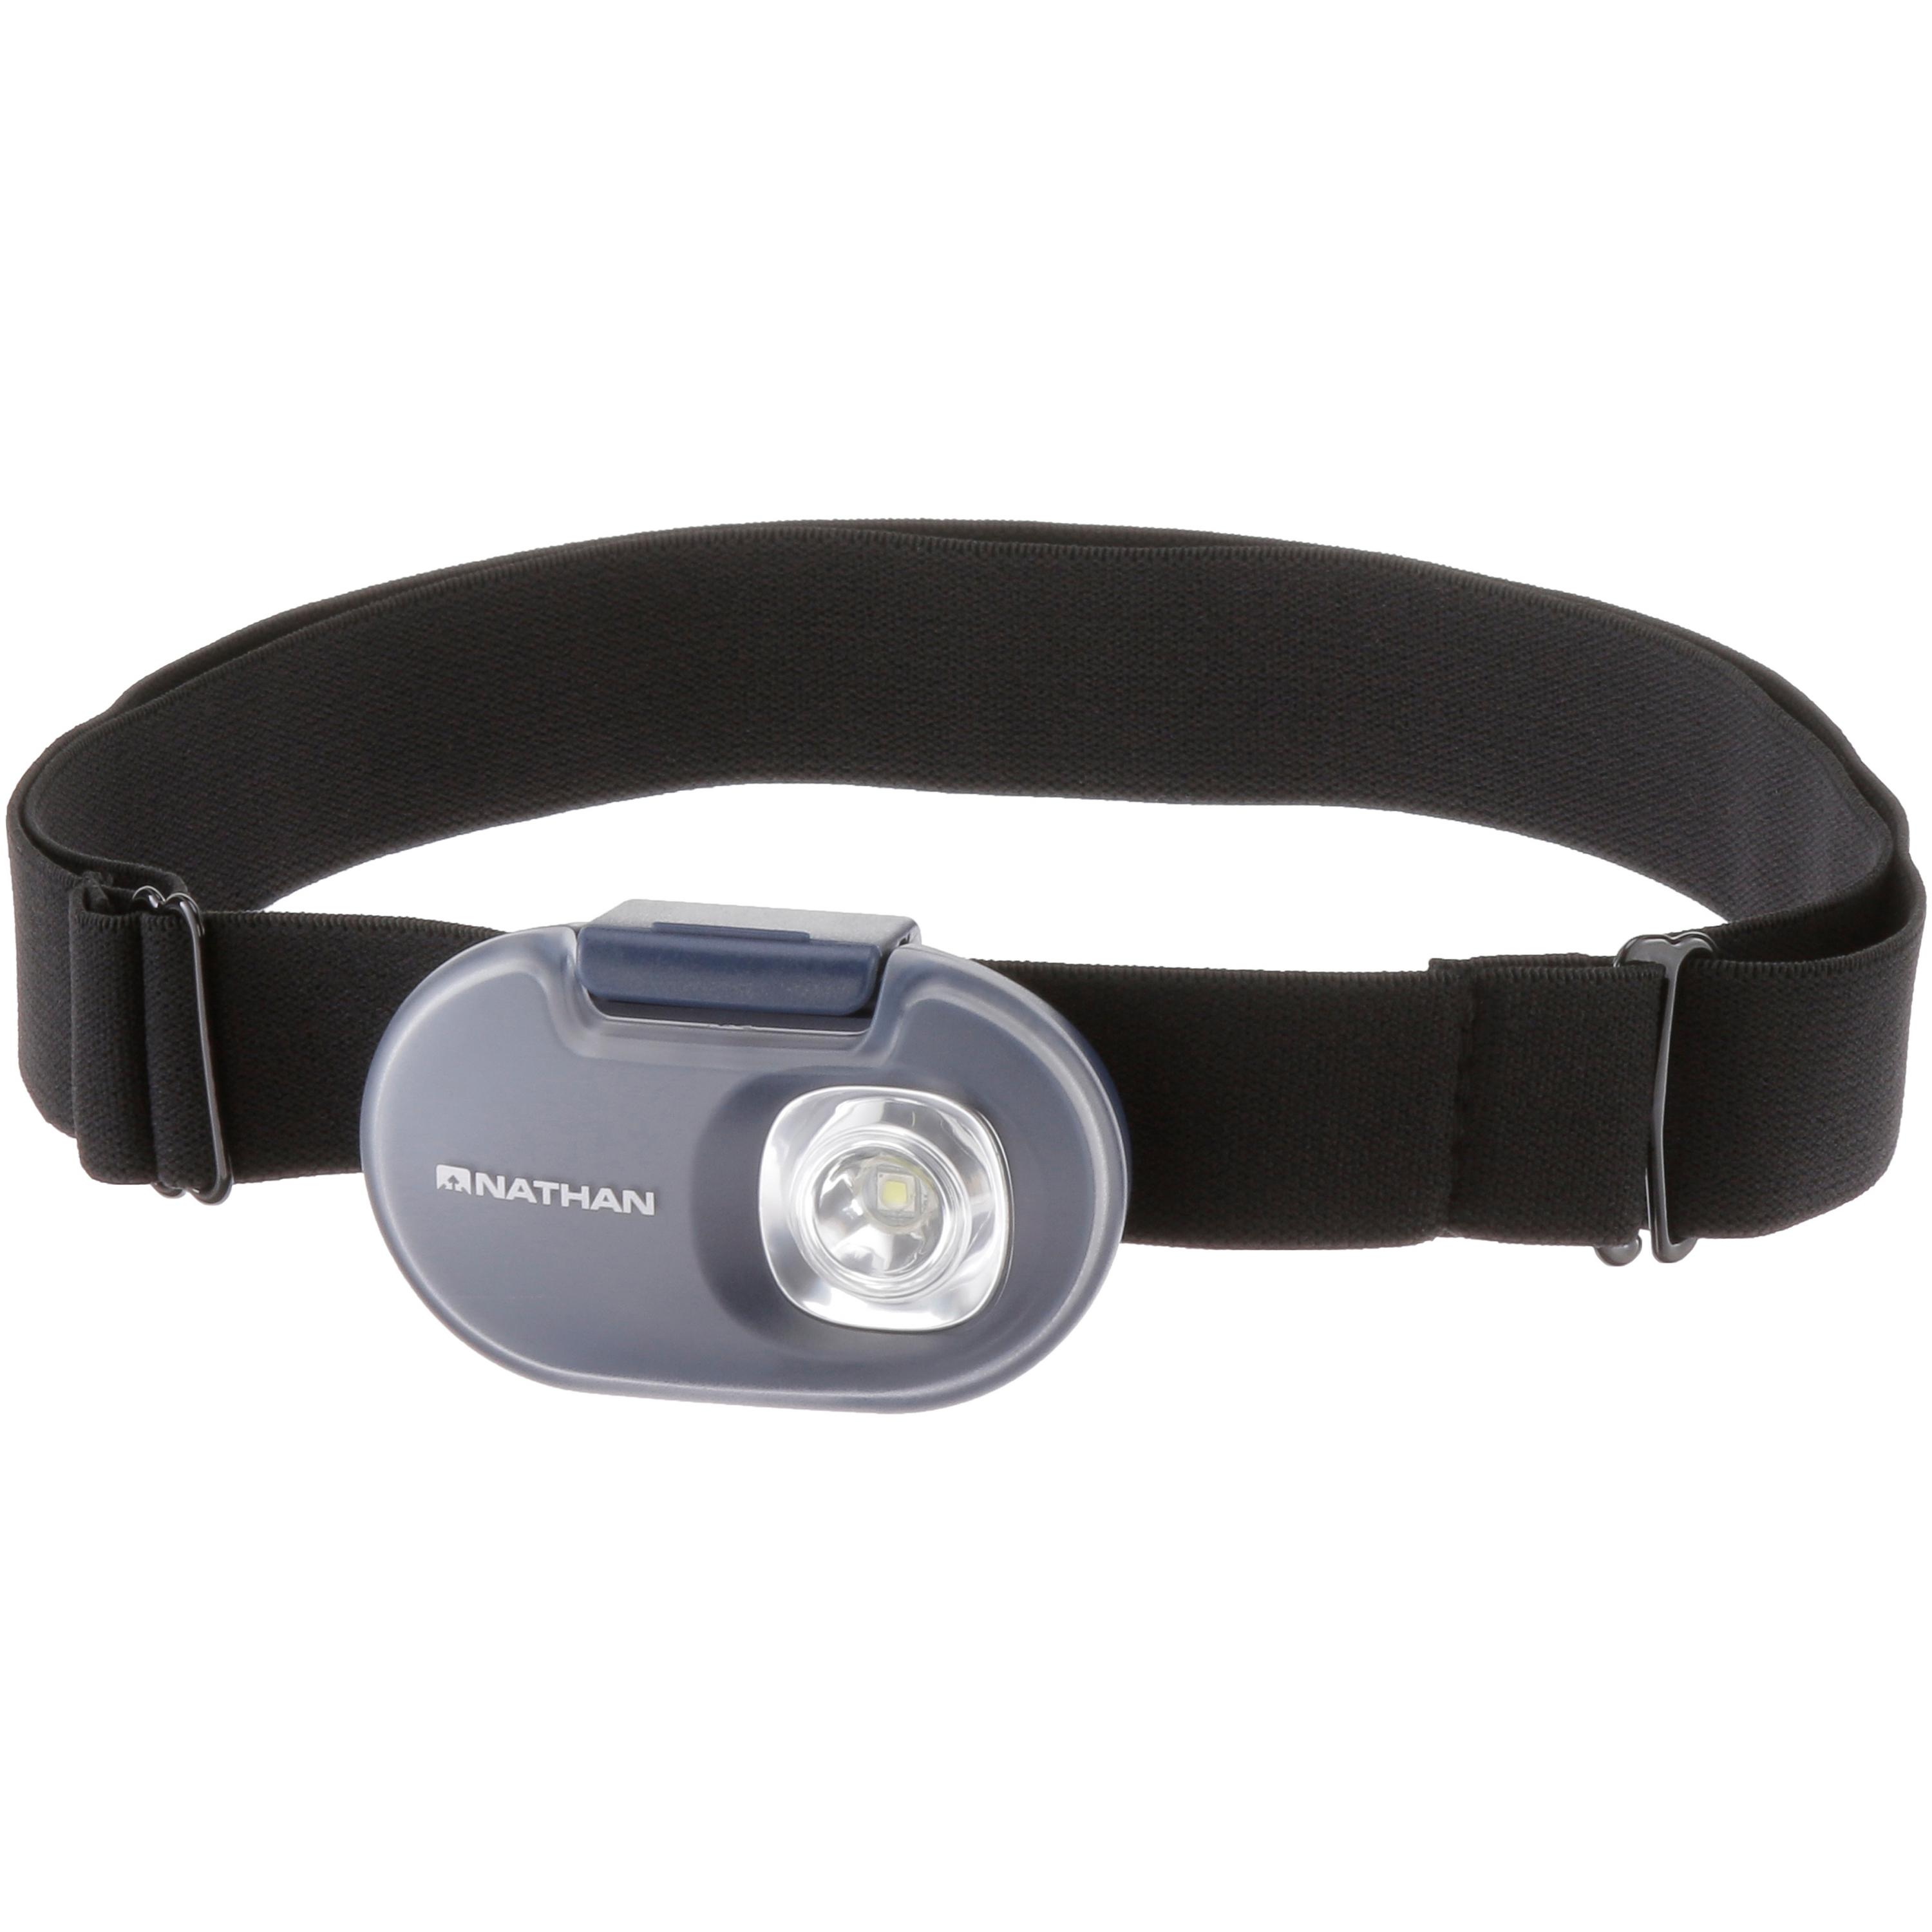 NATHAN Luna Fire 250 RX Chest / Waist light Stirnlampe LED